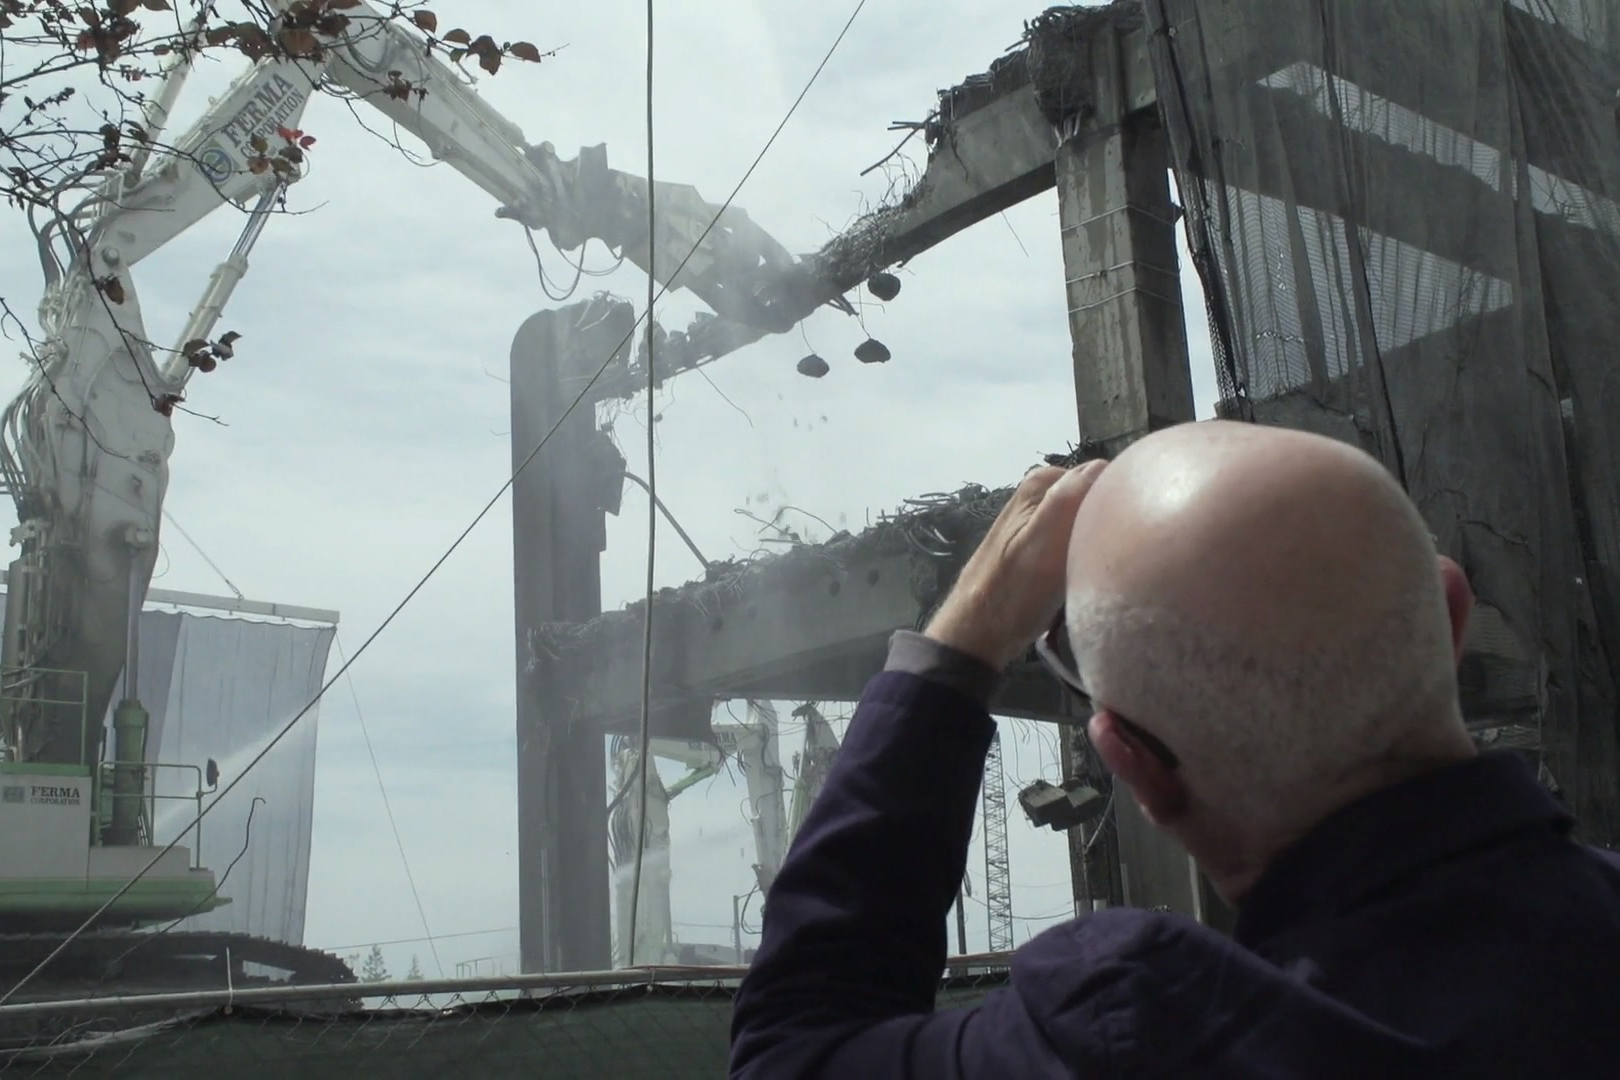 Architect David Miller looks at Seattle's partially demolished Alaskan Way Viaduct